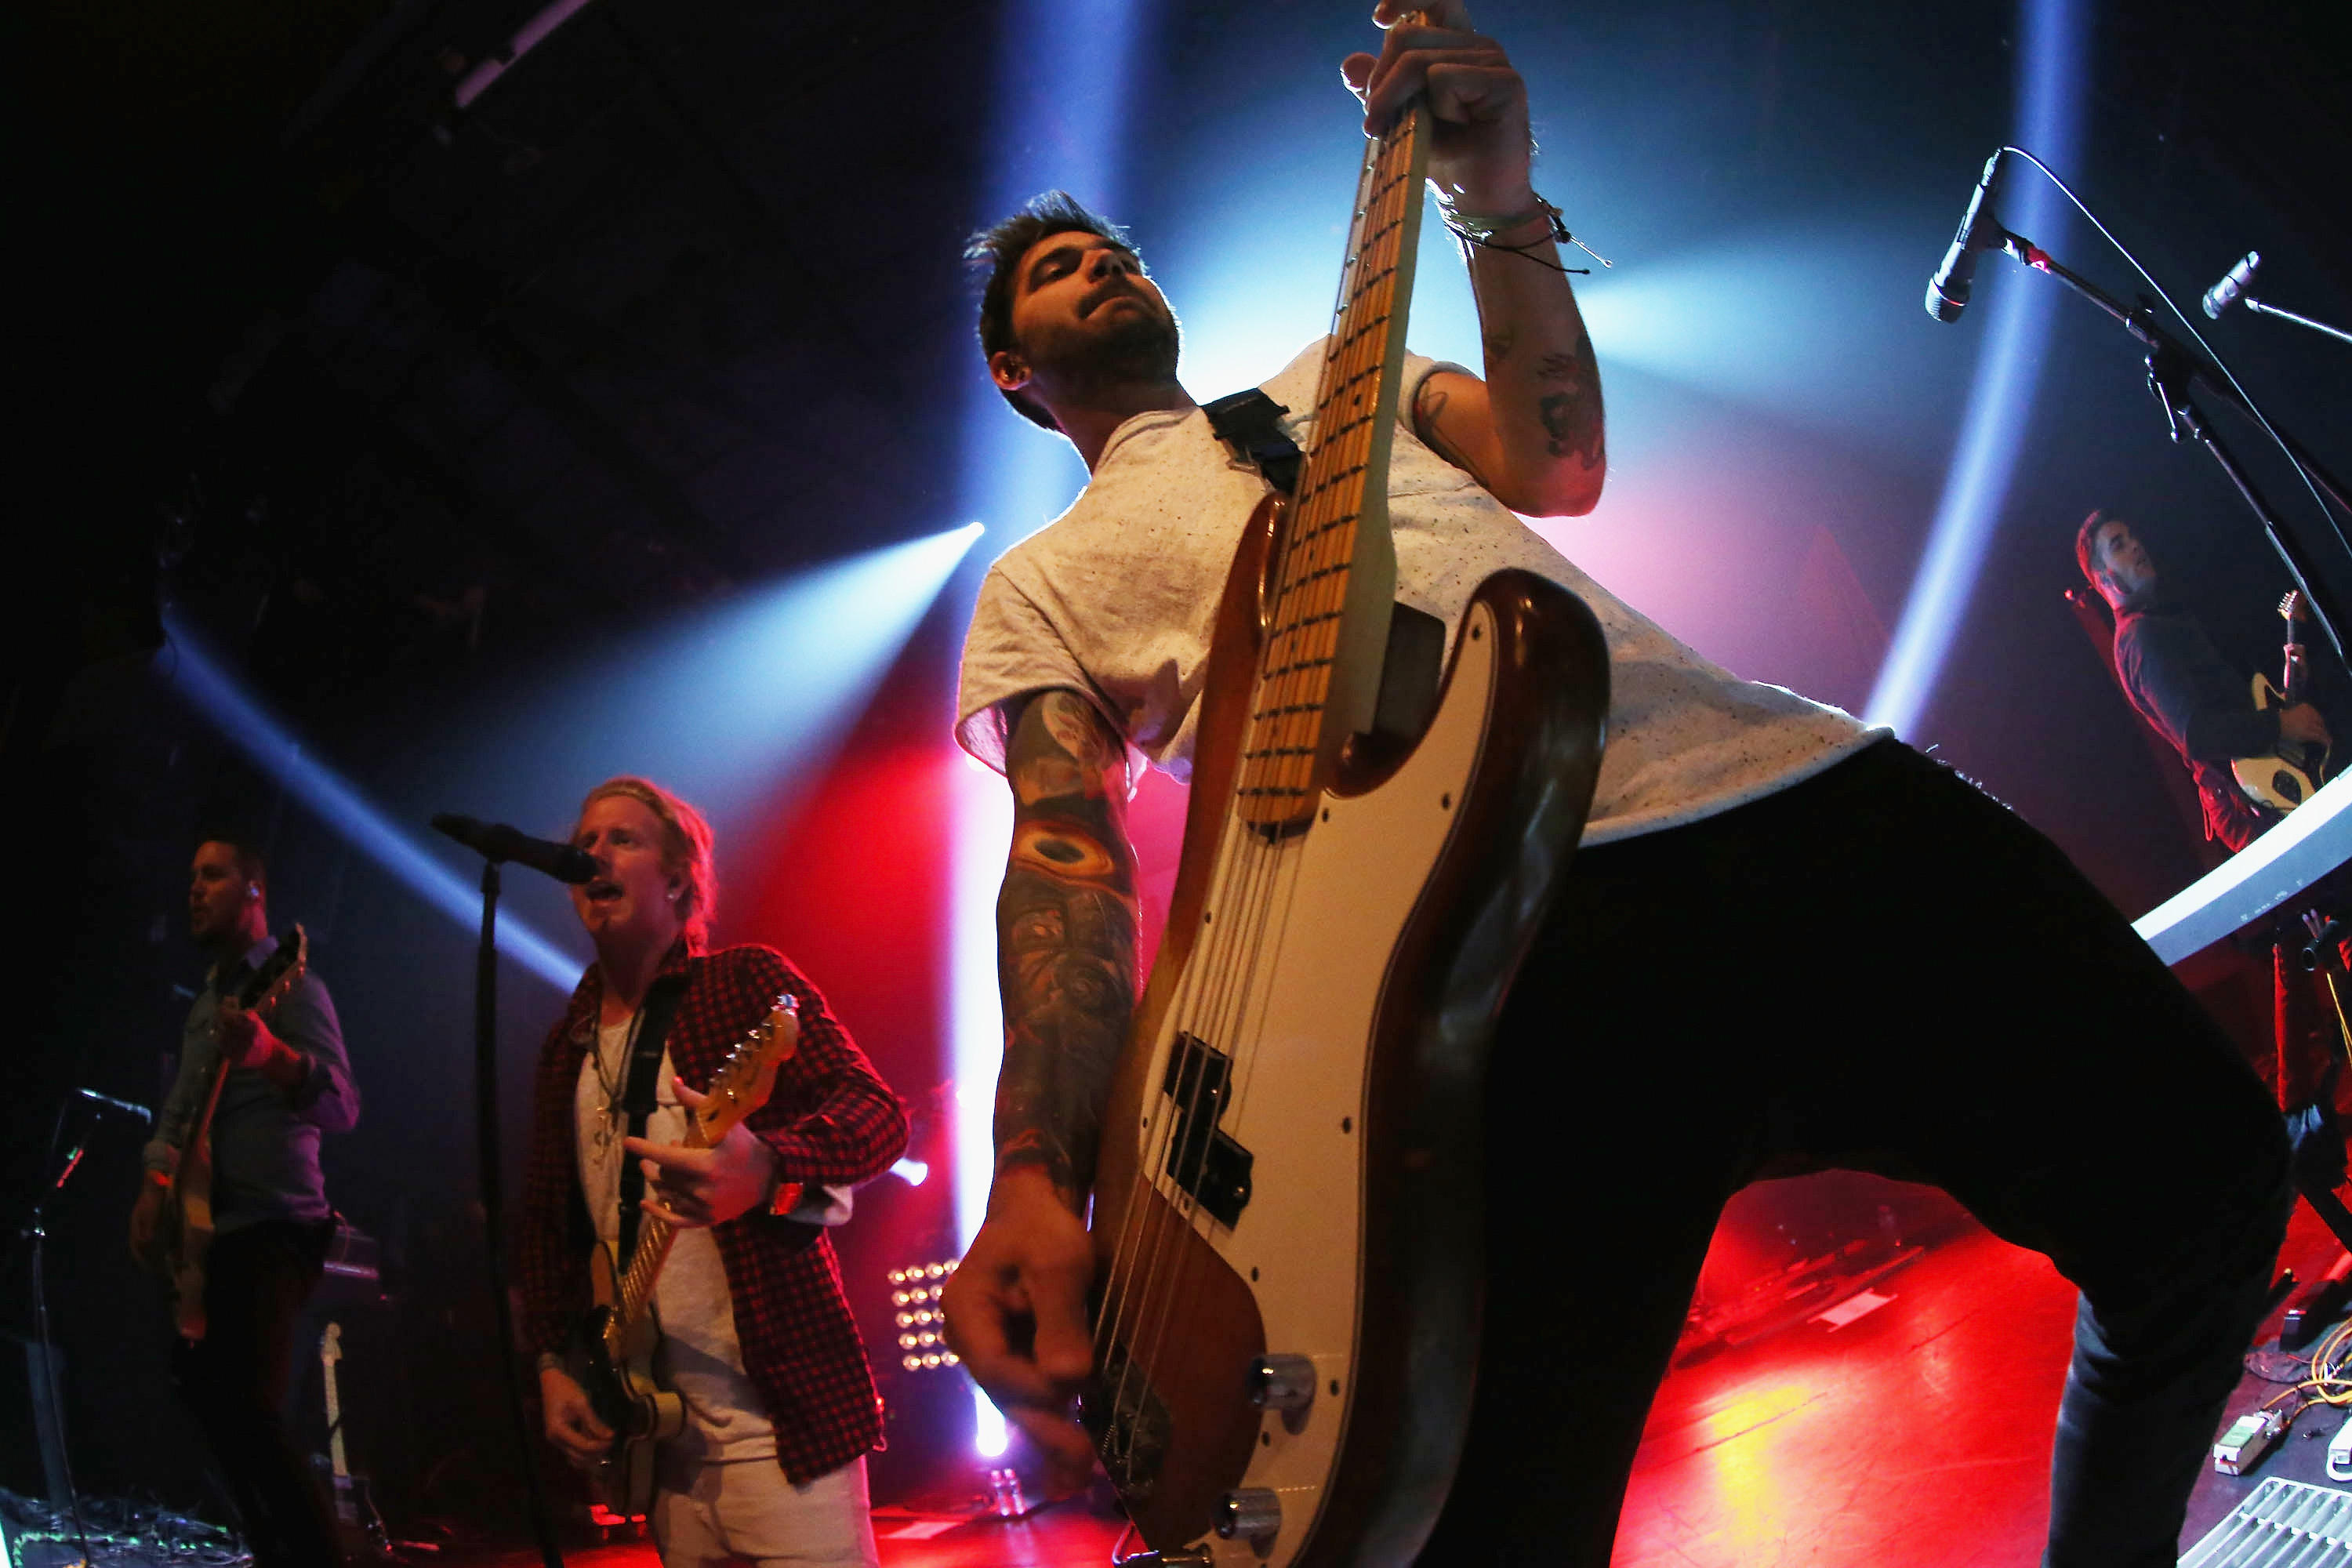 Charles Trippy plays bass in the band We The Kings